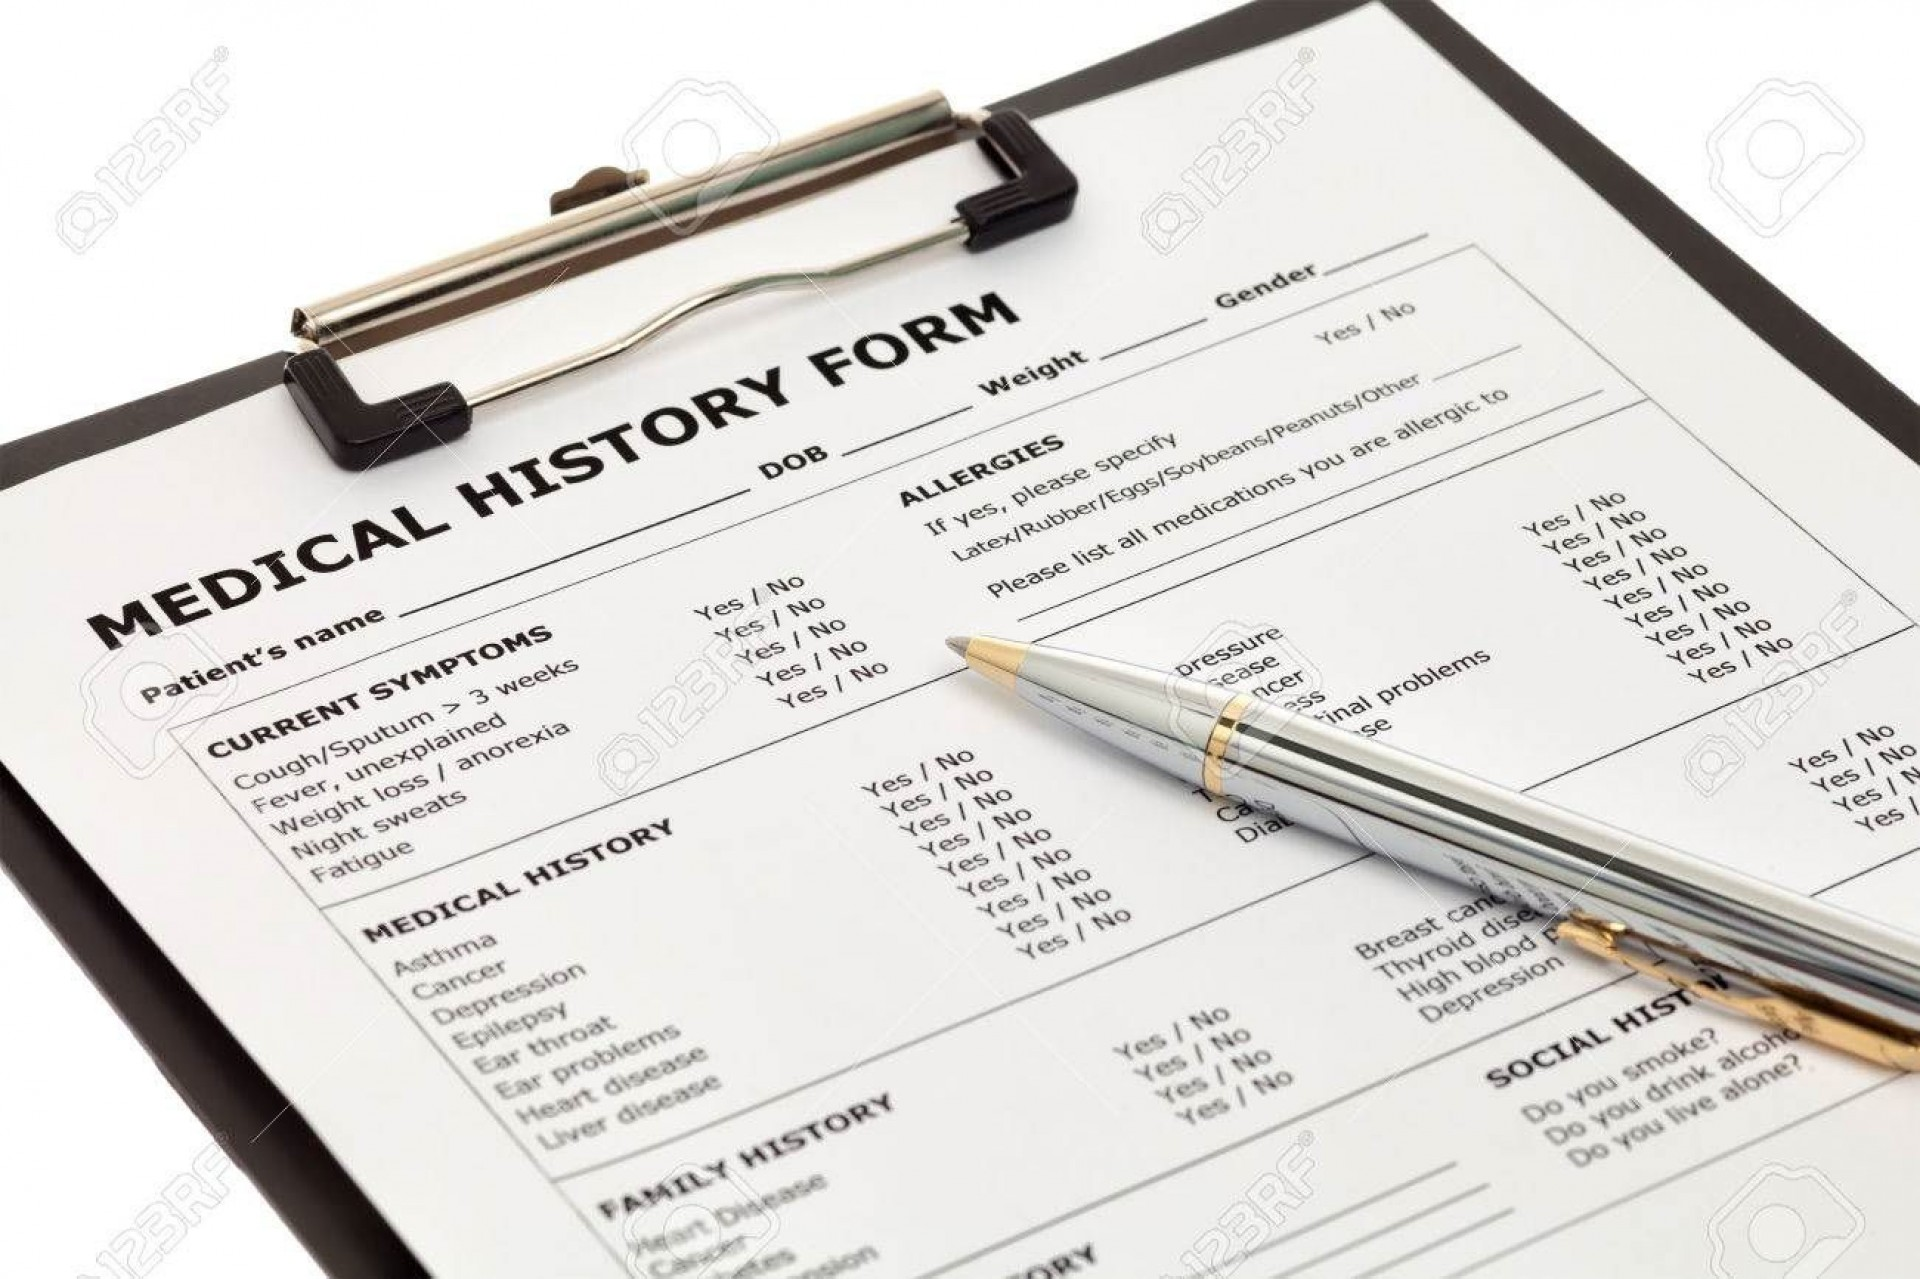 002 Simple Family Medical History Template Free Idea  Questionnaire1920